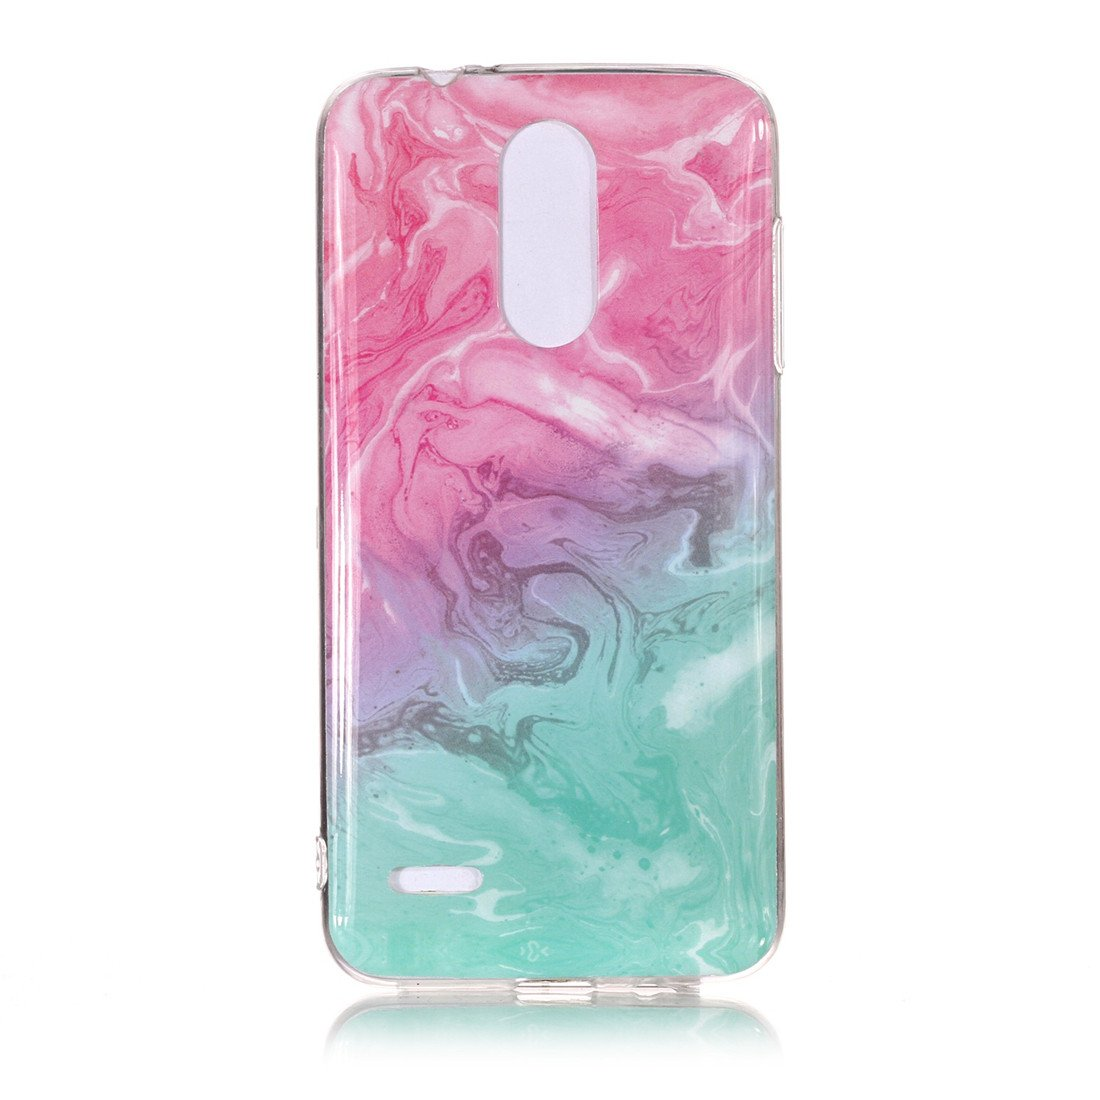 LG K8 2018 Case, LG Tribute Dynasty/Zone 4/Fortune 2/Aristo 2 Case, Lwaisy Slim Fit Shockproof Anti-Scratch Anti-Finger Flexible Soft TPU Rubber Protective Case Cover - Pink/Green Marble